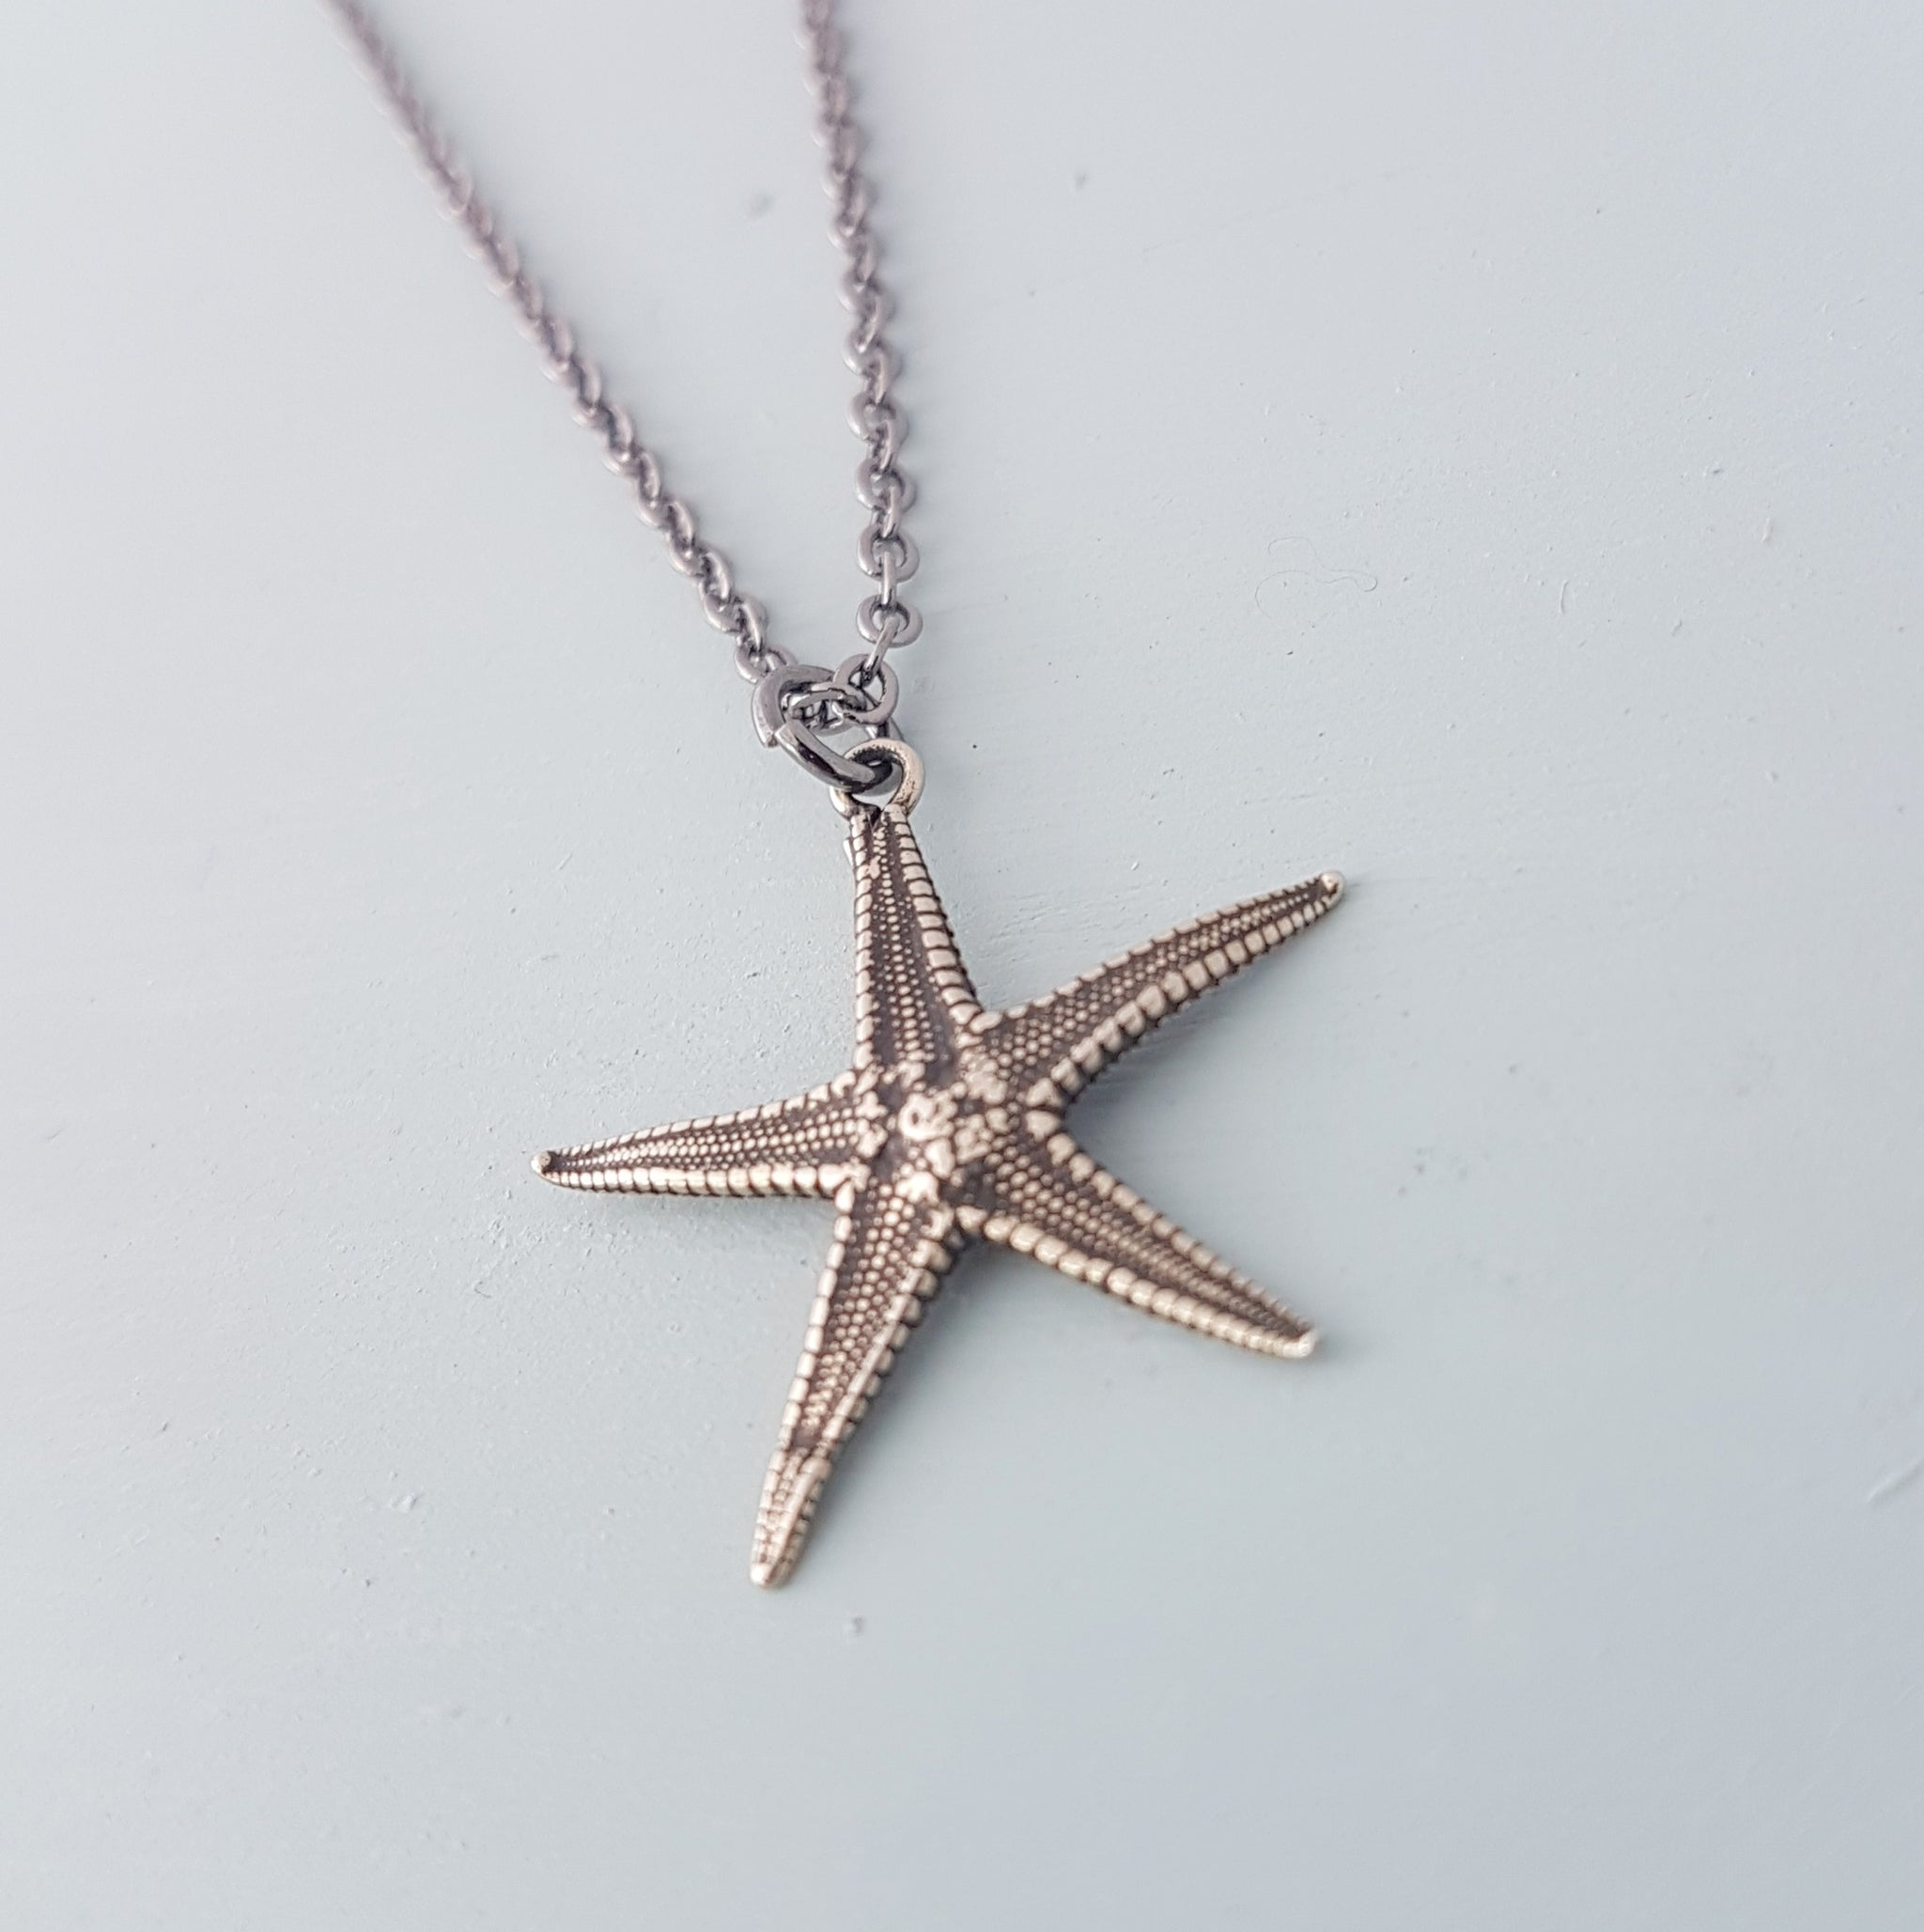 Starfish Necklace - Gwen Delicious Jewelry Designs